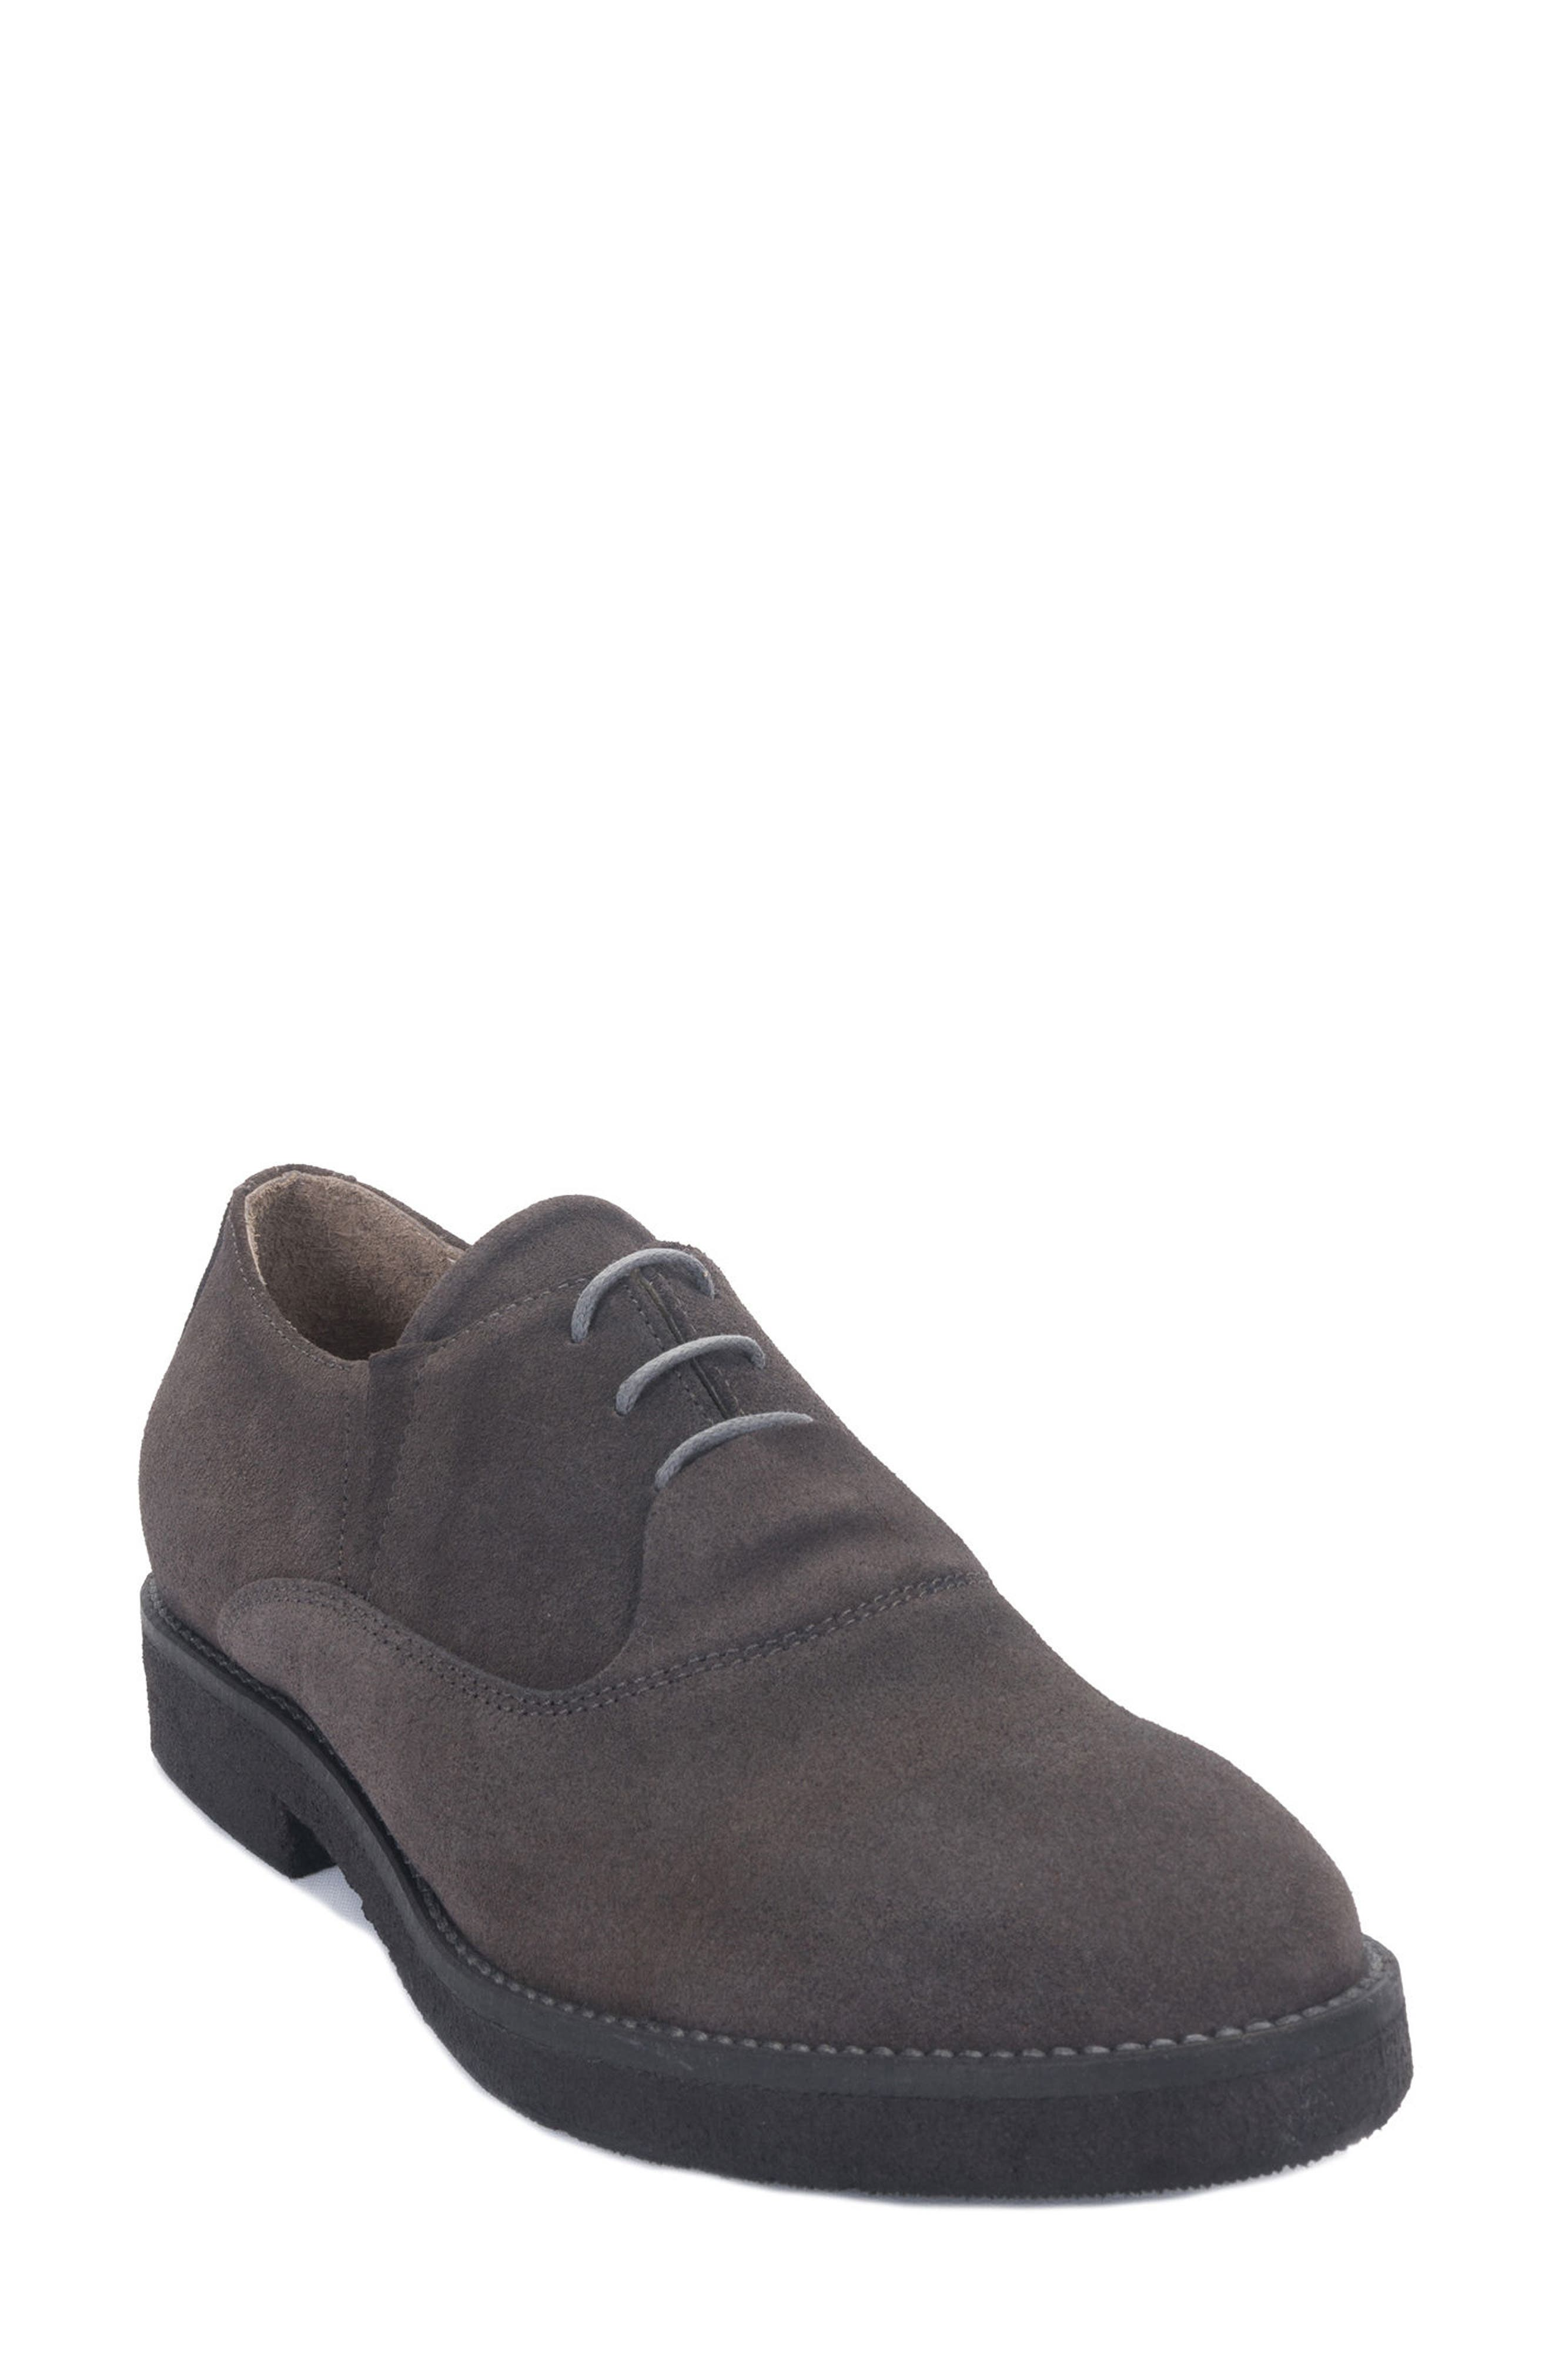 Molinella Water-Resistant Oxford,                             Main thumbnail 1, color,                             002